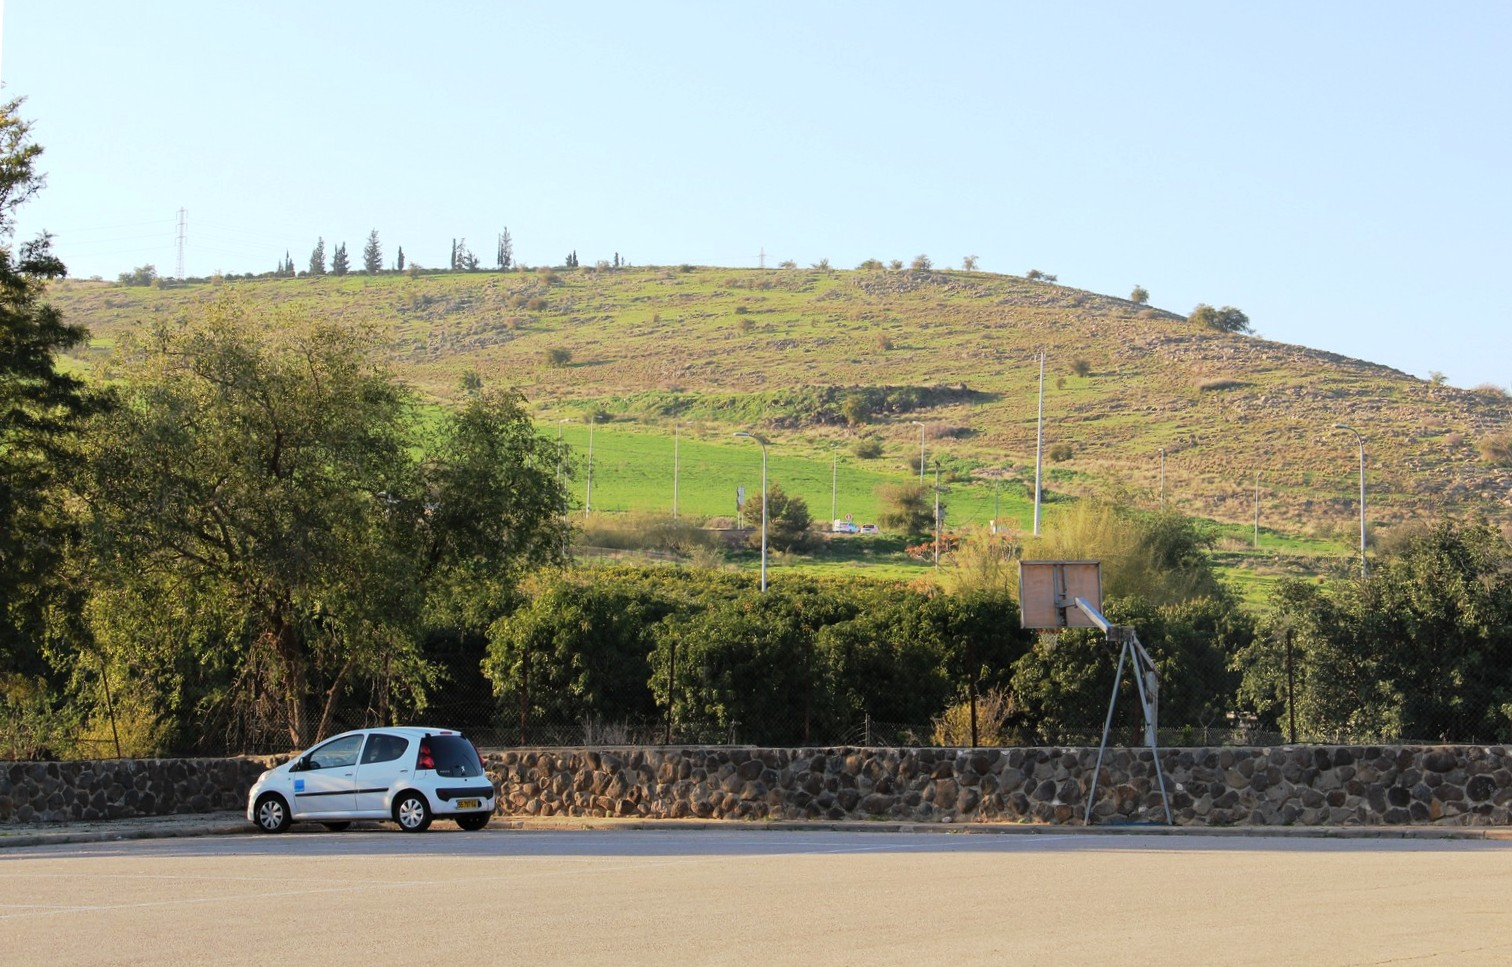 driving tips for renting a car in Israel